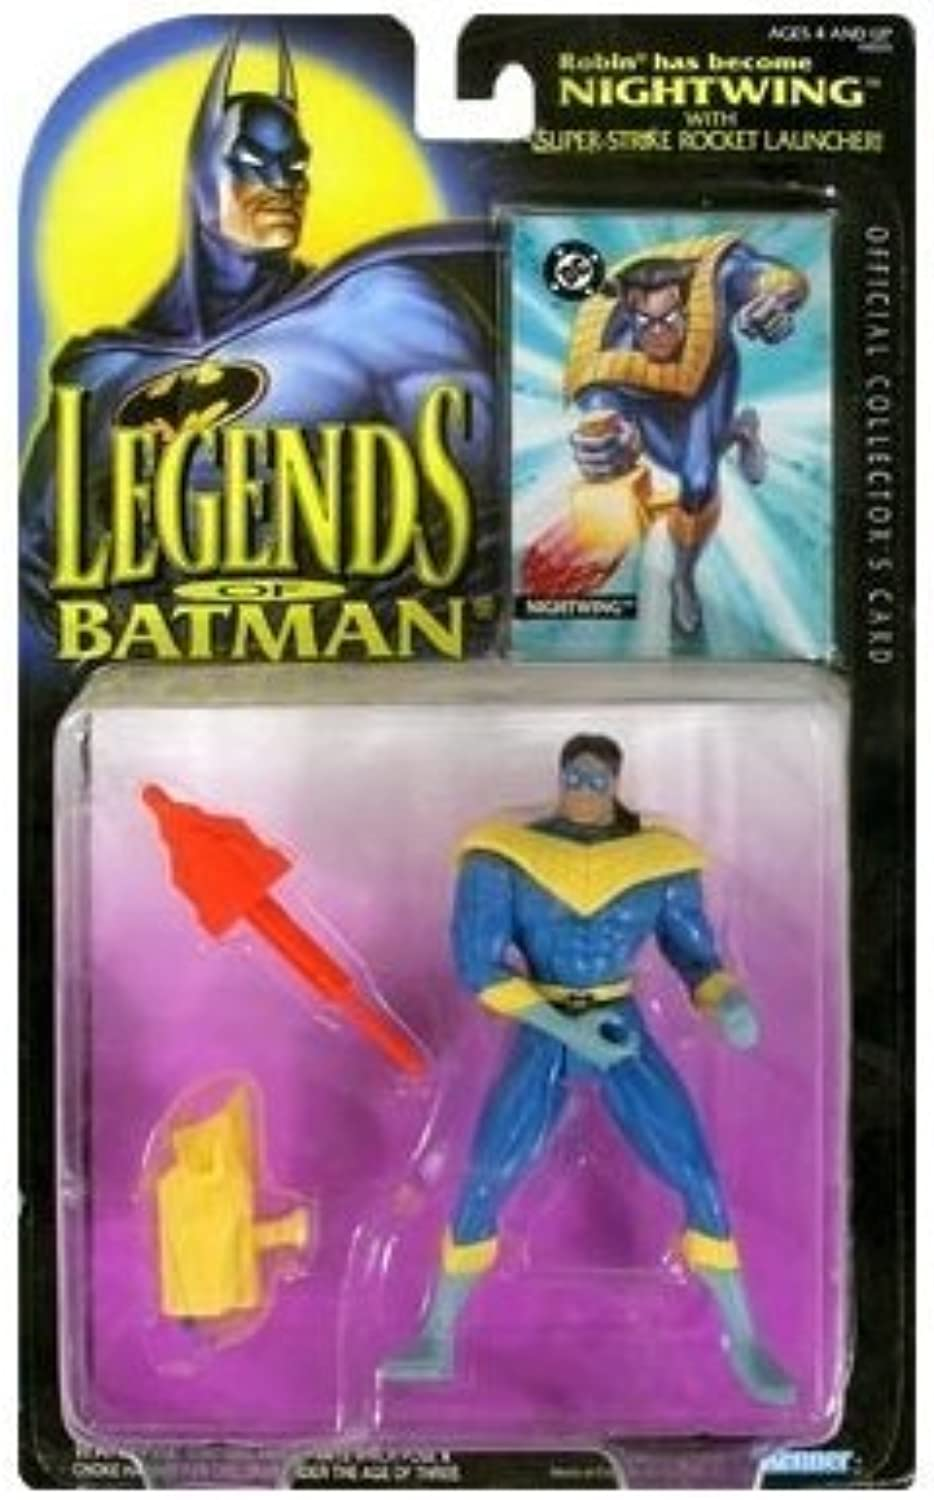 Kenner Year 1994 Legends of Batman 5 Inch Tall Action Figure  NIGHTWING with Super Strike Rocket Launcher and Official Collector's Card by Legends of Batman